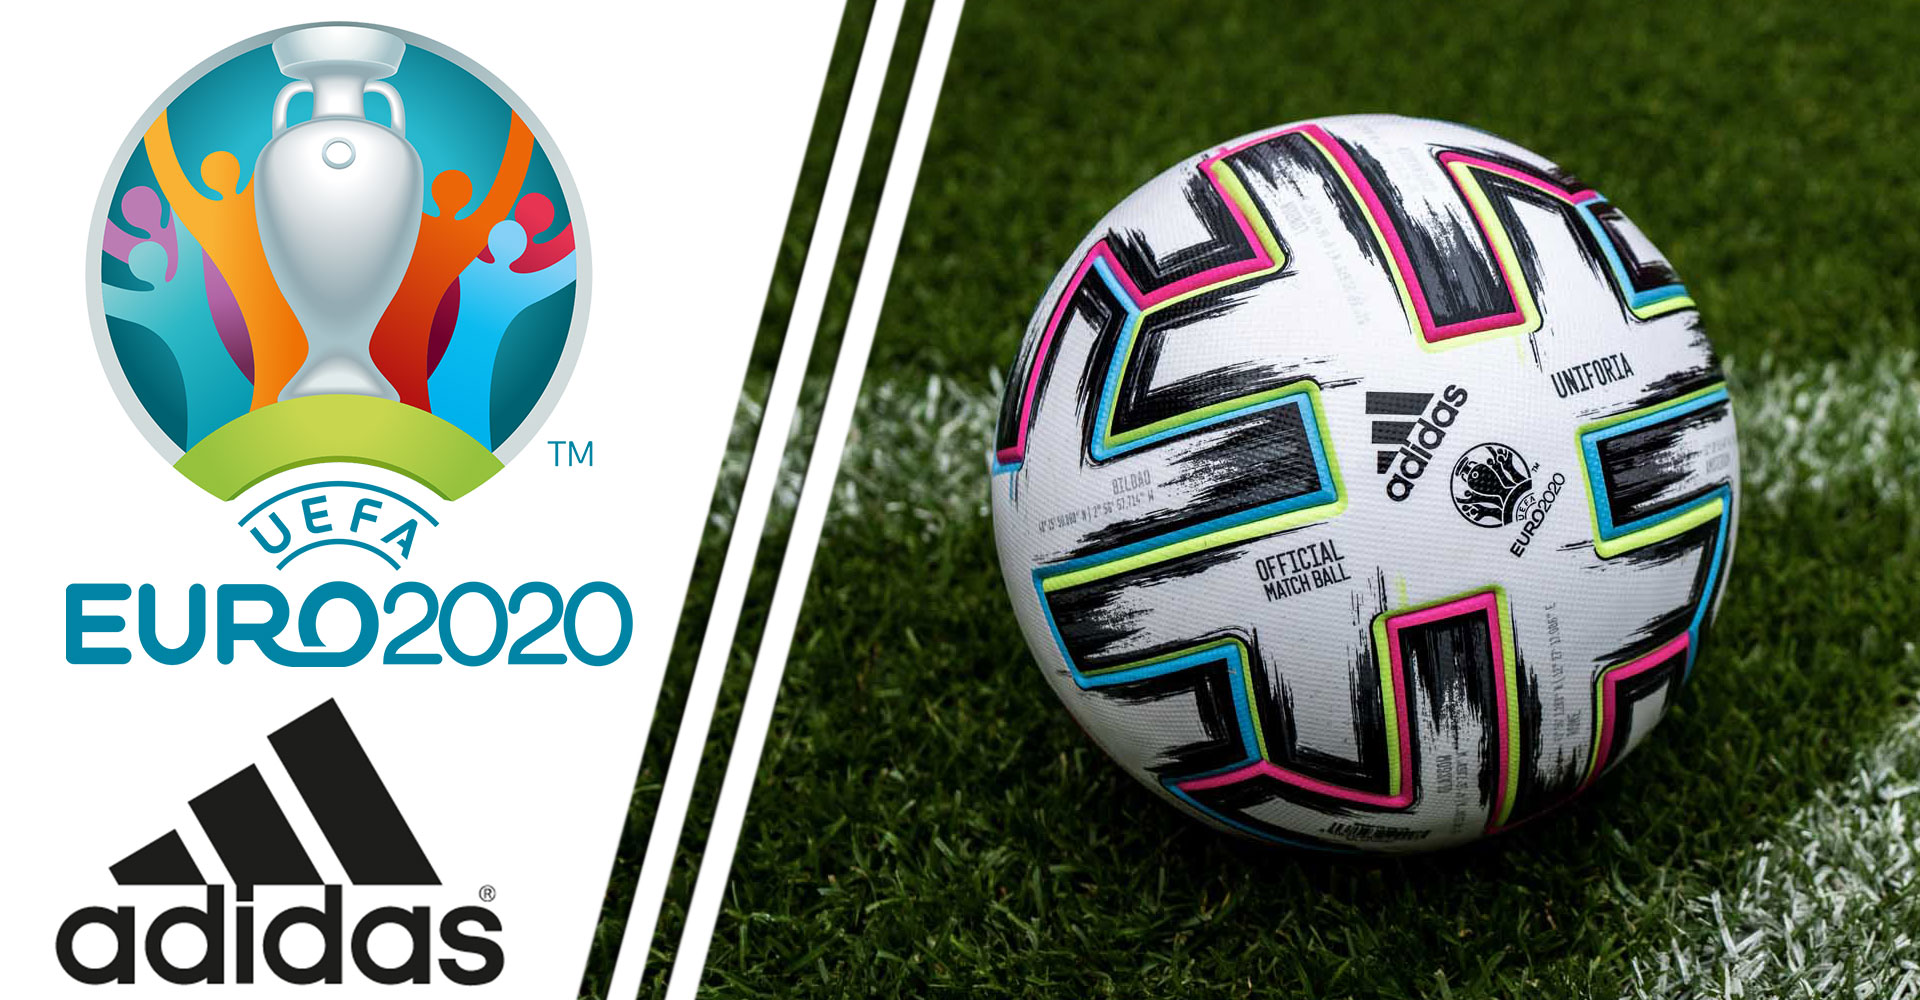 Piłka nożna Adidas Uniforia Euro 2020 Match Ball Replica FH7376 Box